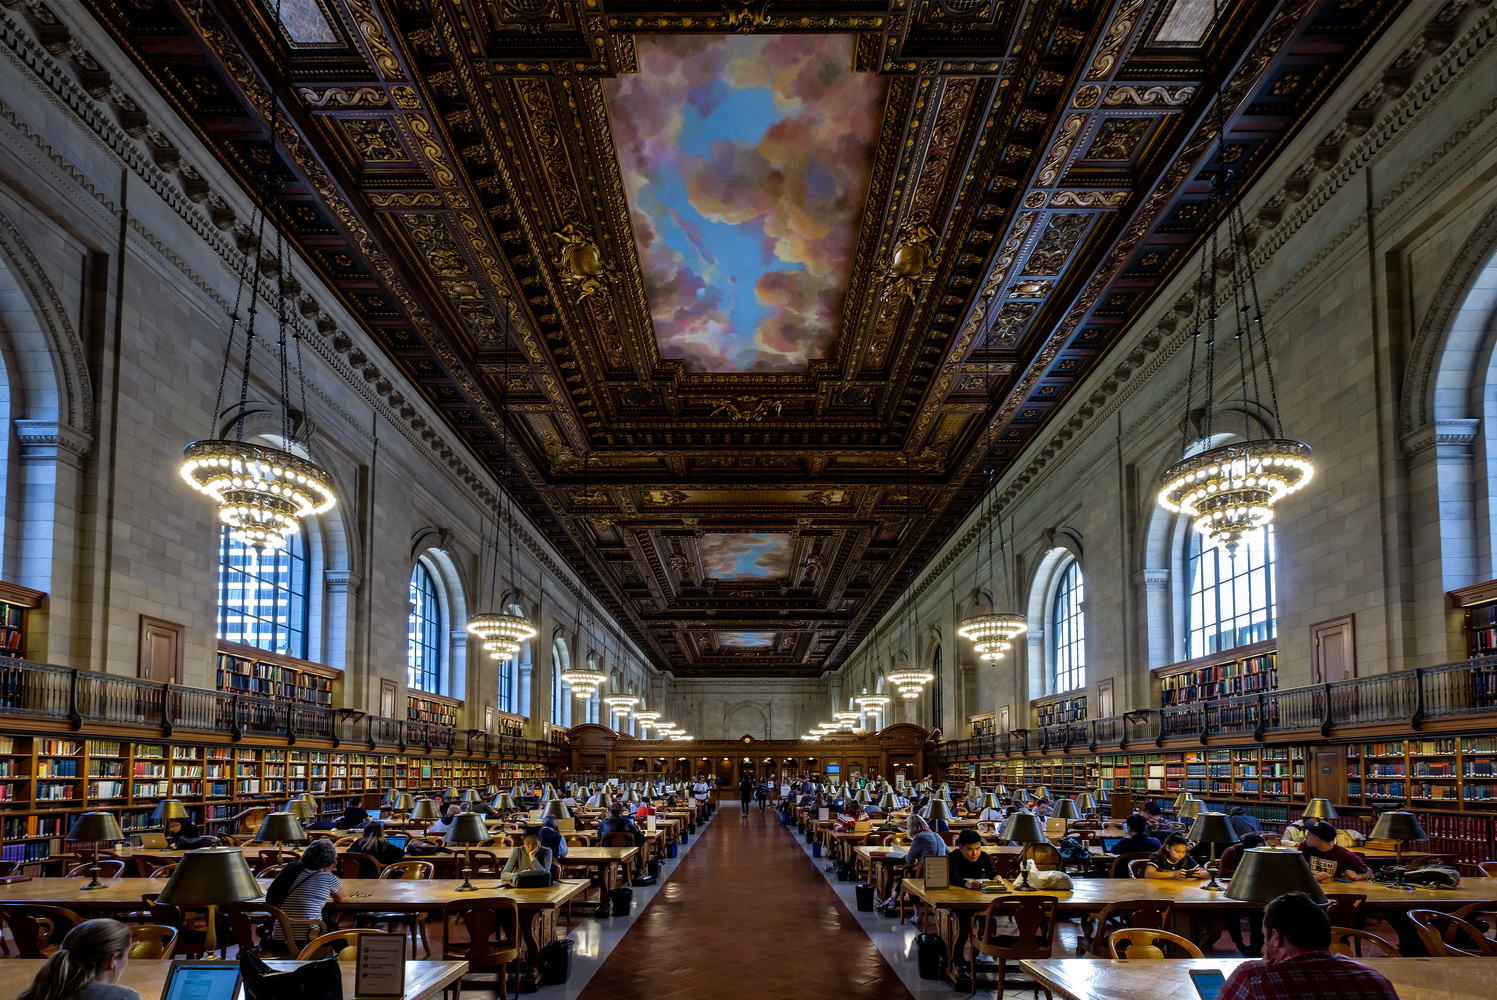 The Rose Reading Room by Chris Ward